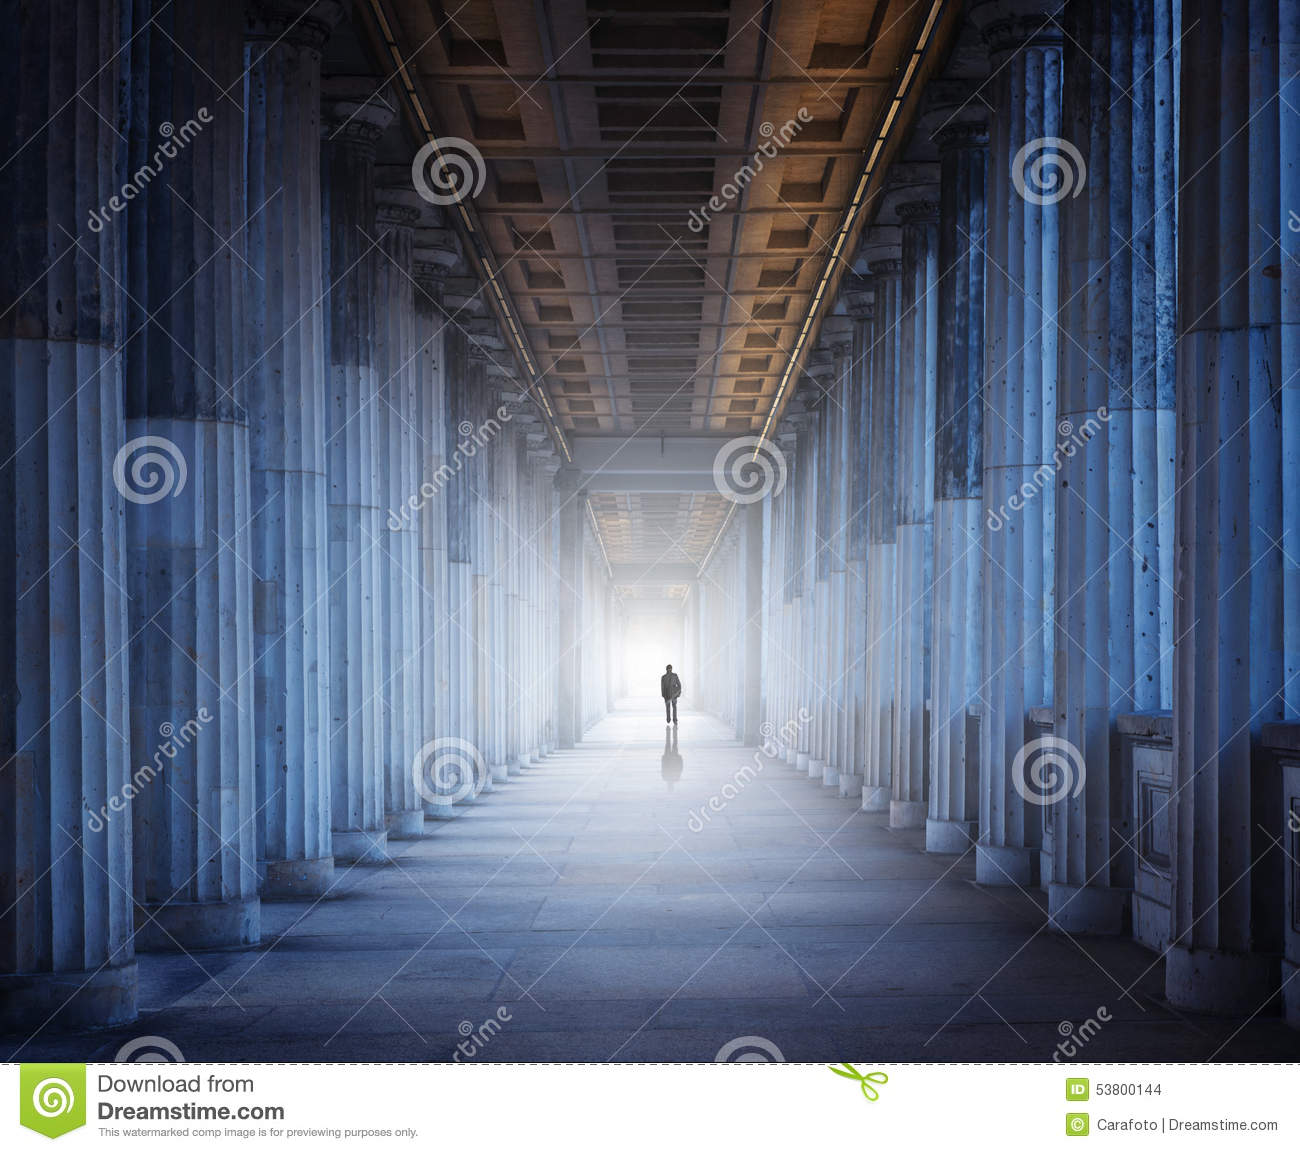 A historical building and a man walking into the light